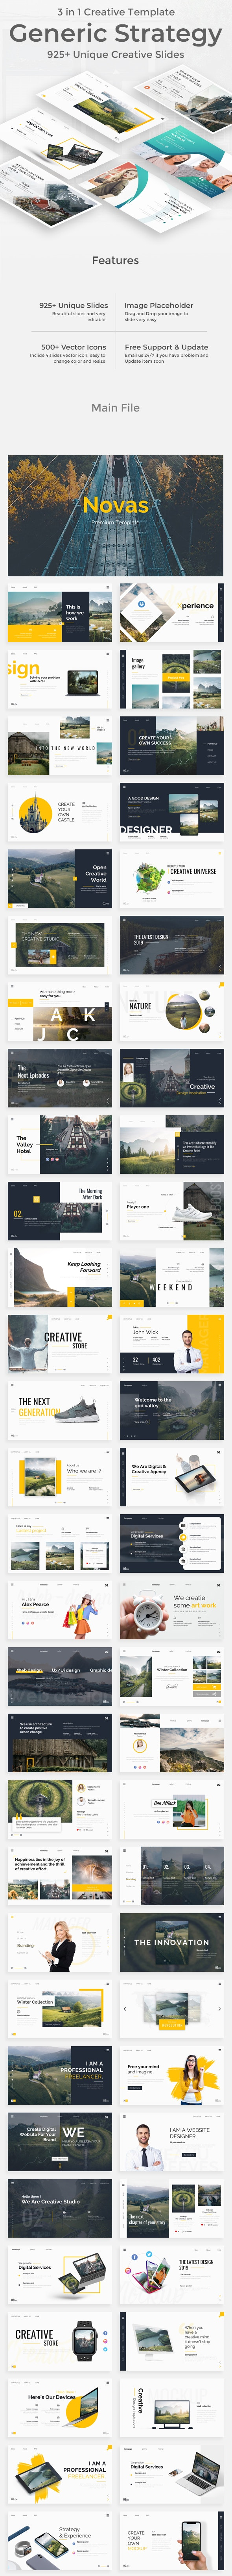 3 in 1 Generic Strategy Creative and Busniess Bundle Powerpoint Pitch Deck Template - Creative PowerPoint Templates